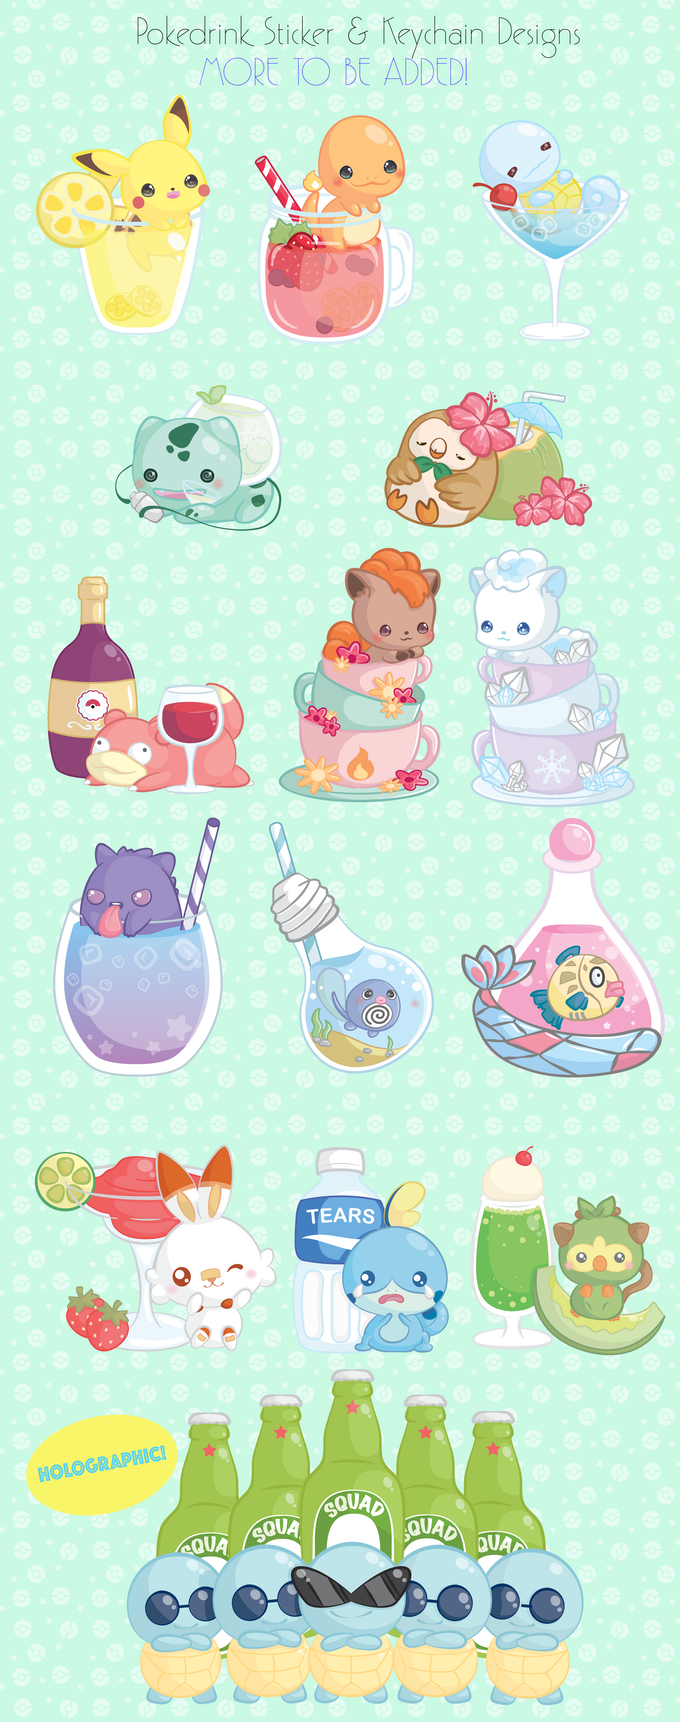 Stickers & Keychain designs (more to be added!)